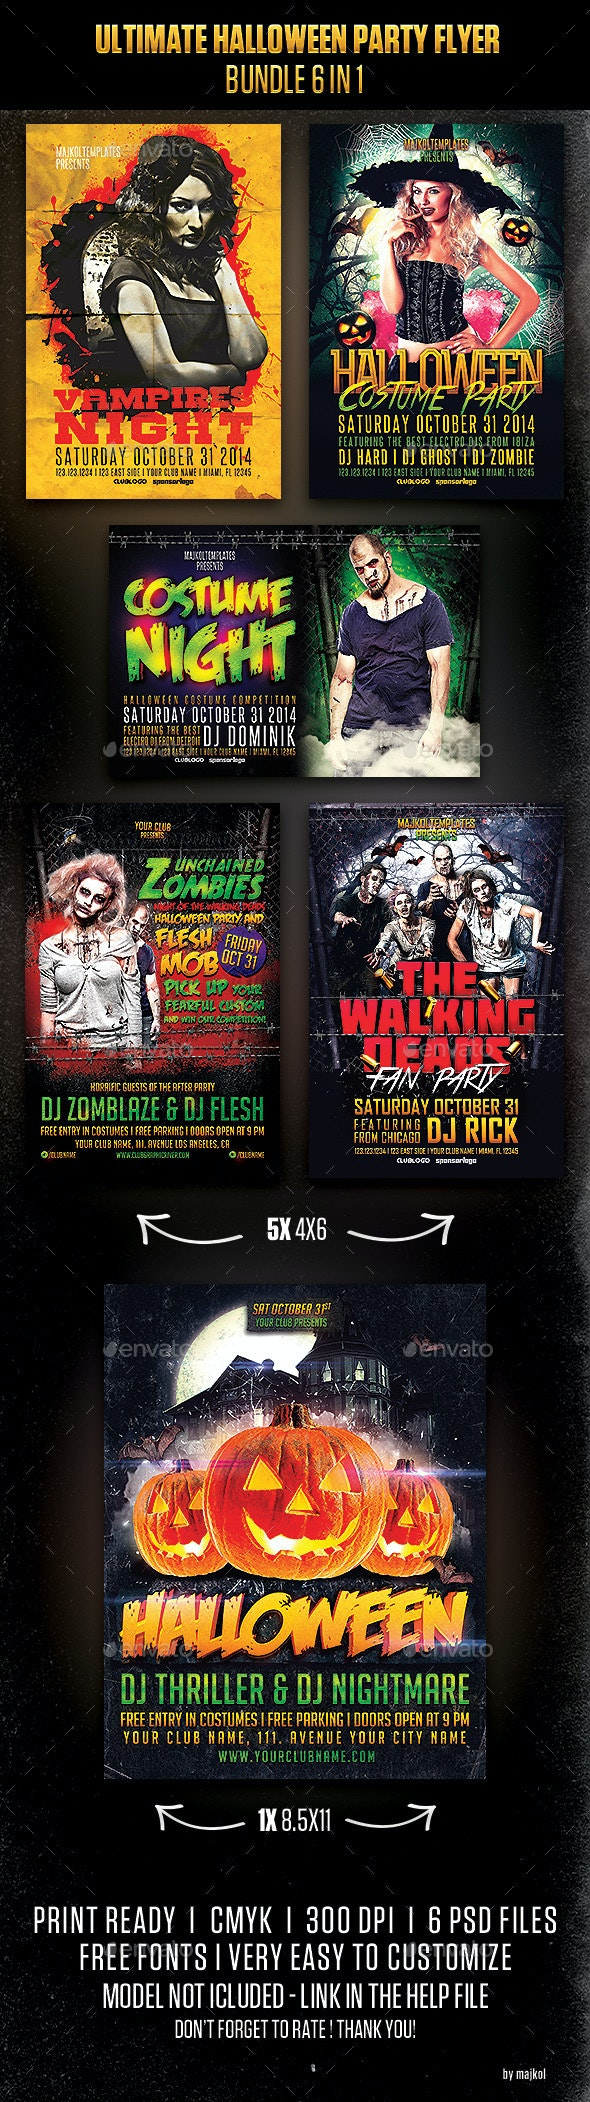 Ultimate Halloween Party Flyer Bundle 6 in 1 - Events Flyers